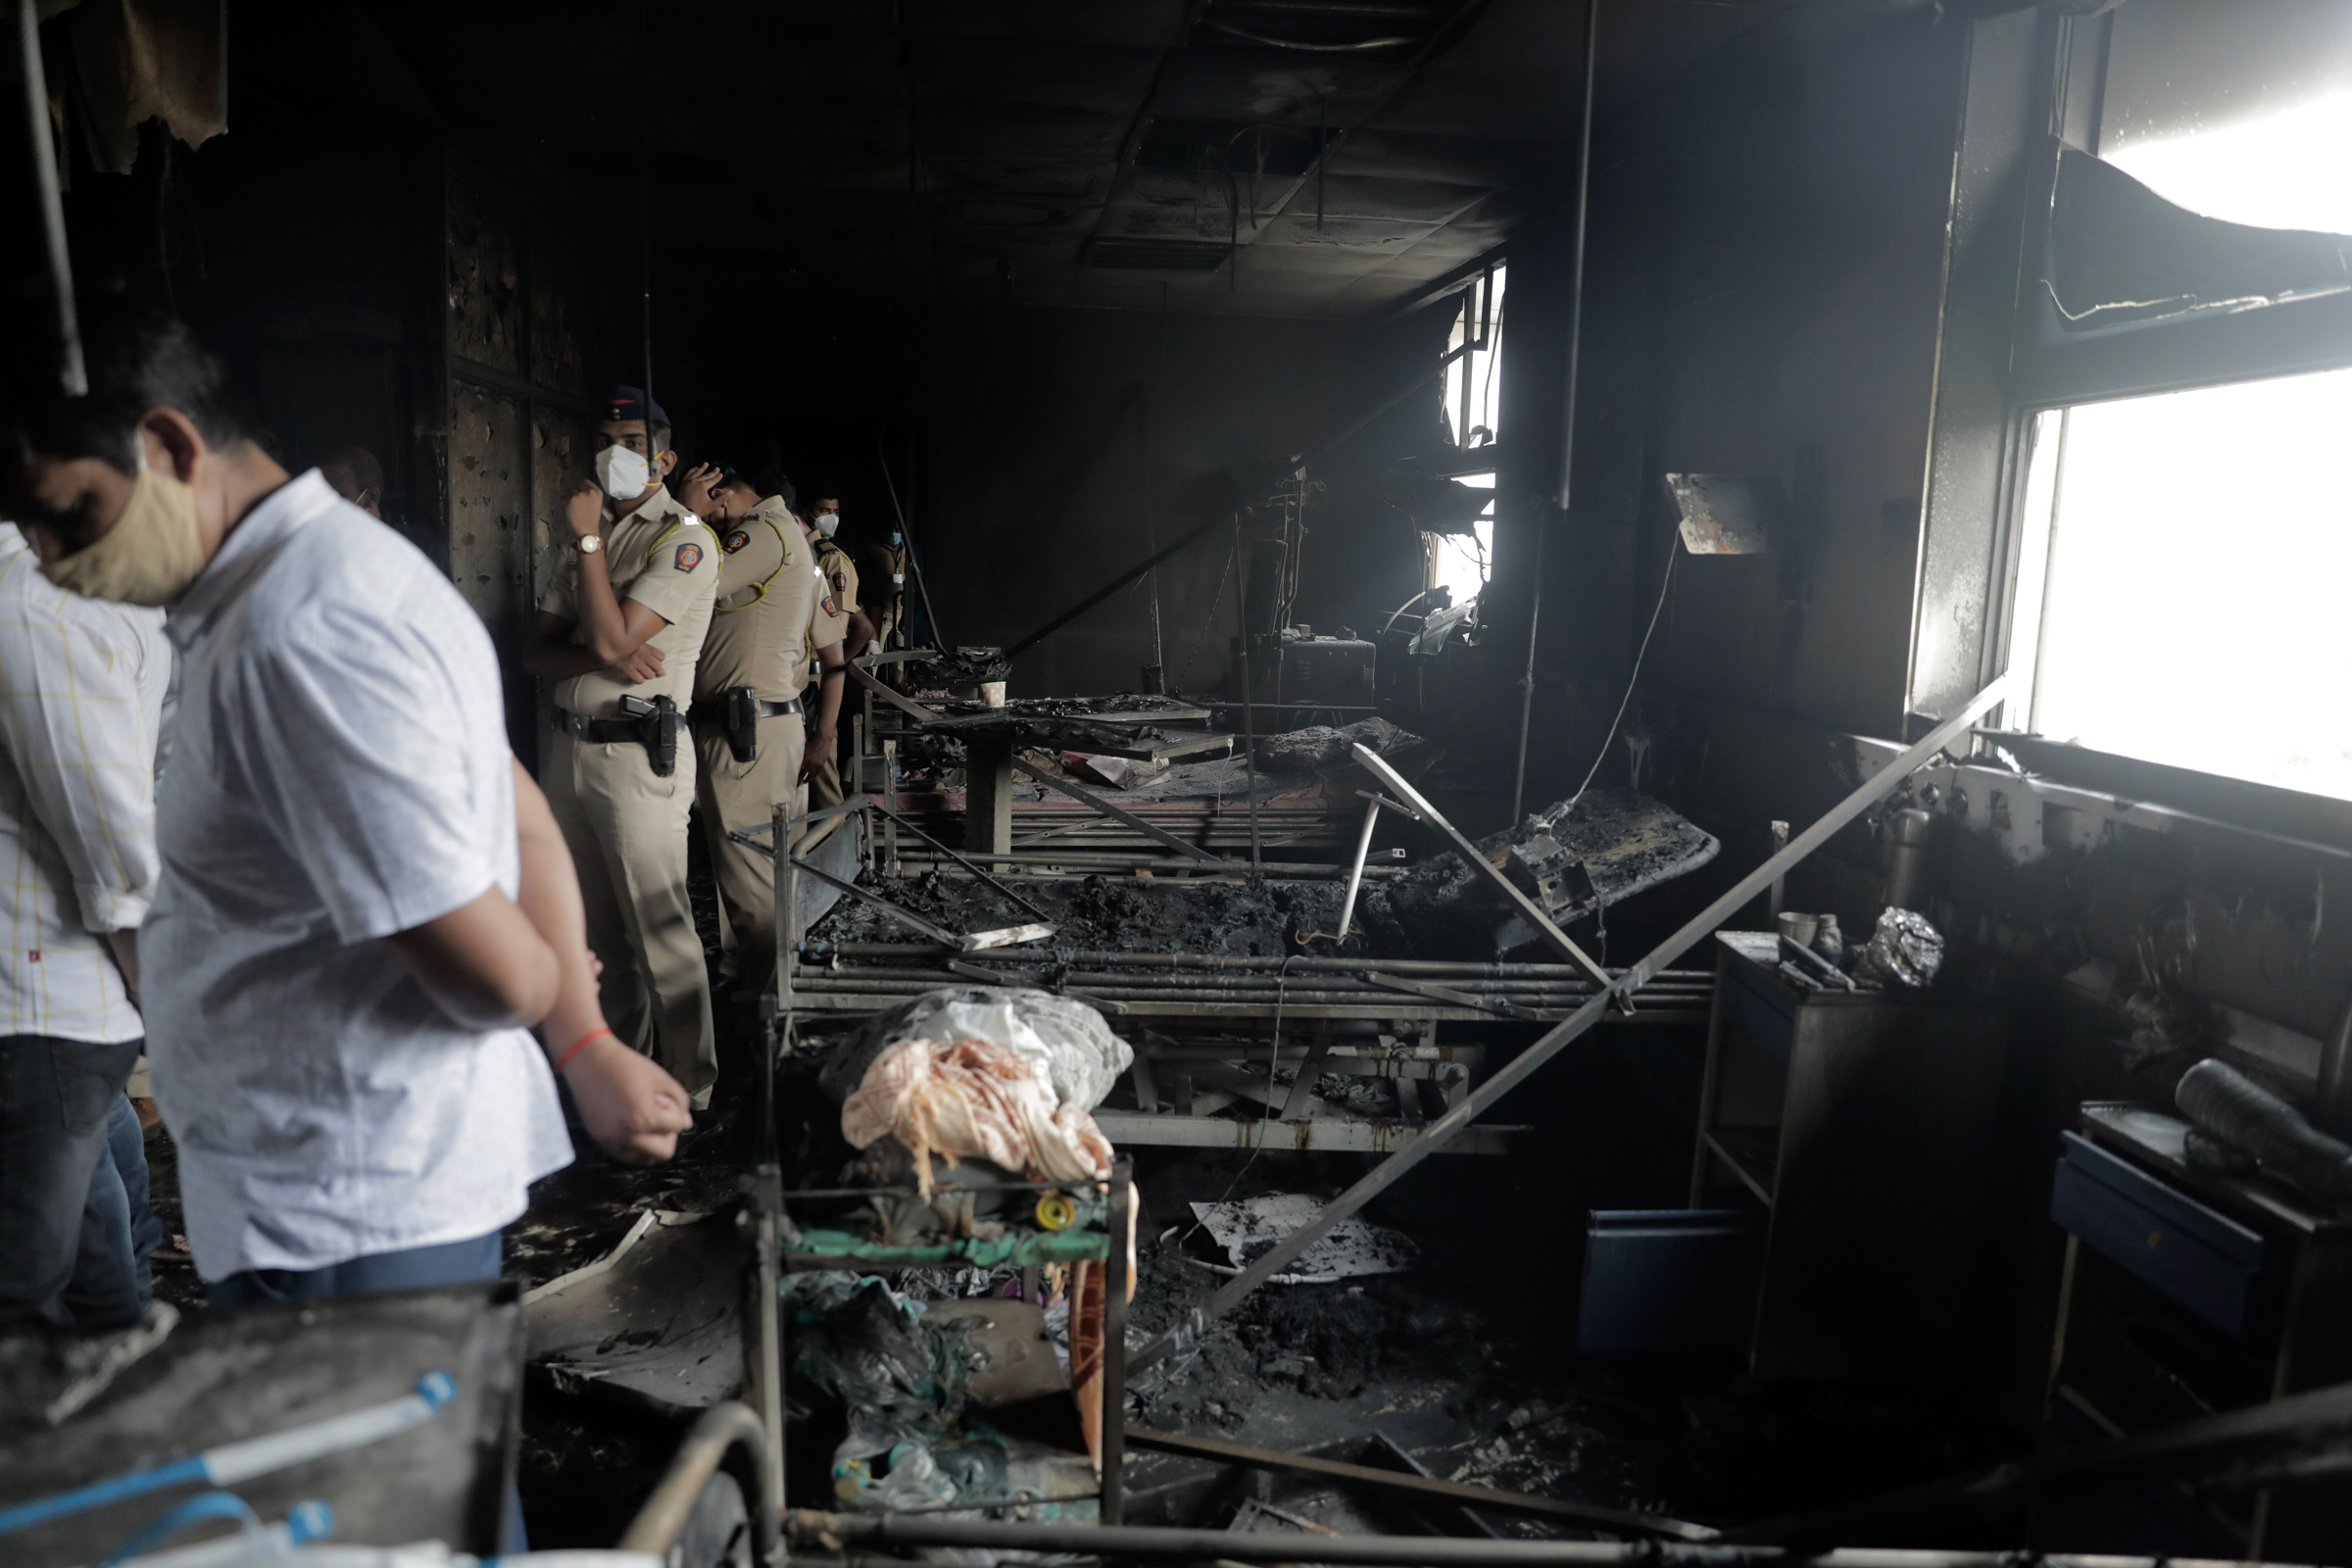 People inspect an ICU ward after a fire broke out in Vijay Vallabh Covid-19 hospital at Virar, near Mumbai, India, on Friday, April 23.